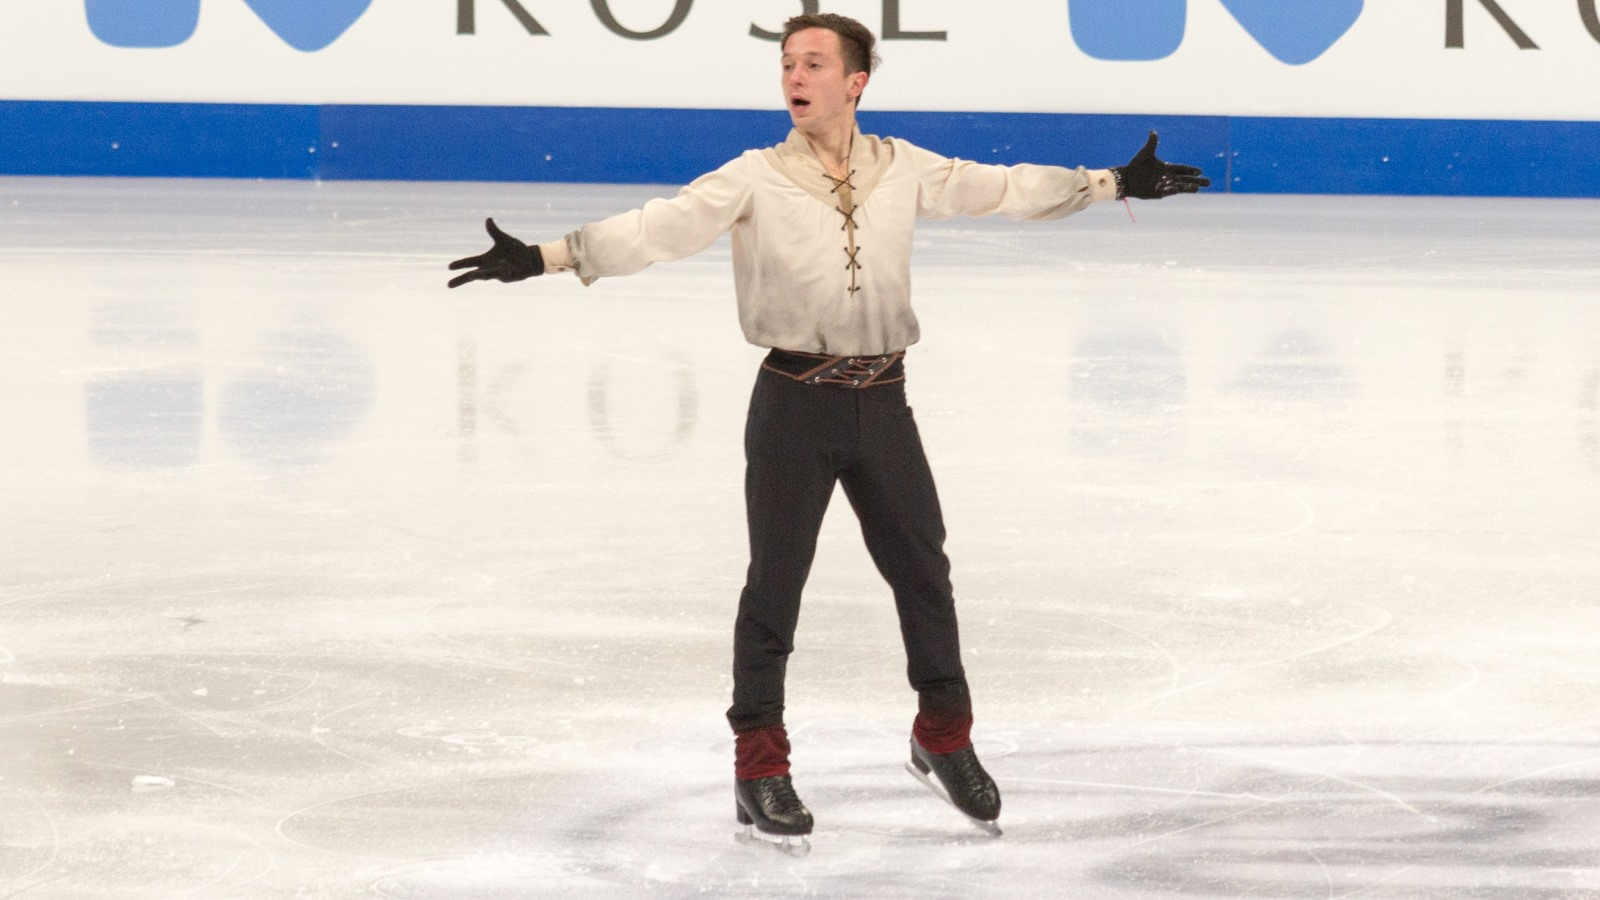 Danger on the ice: Israeli figure-skater Alexei Bychenko ...